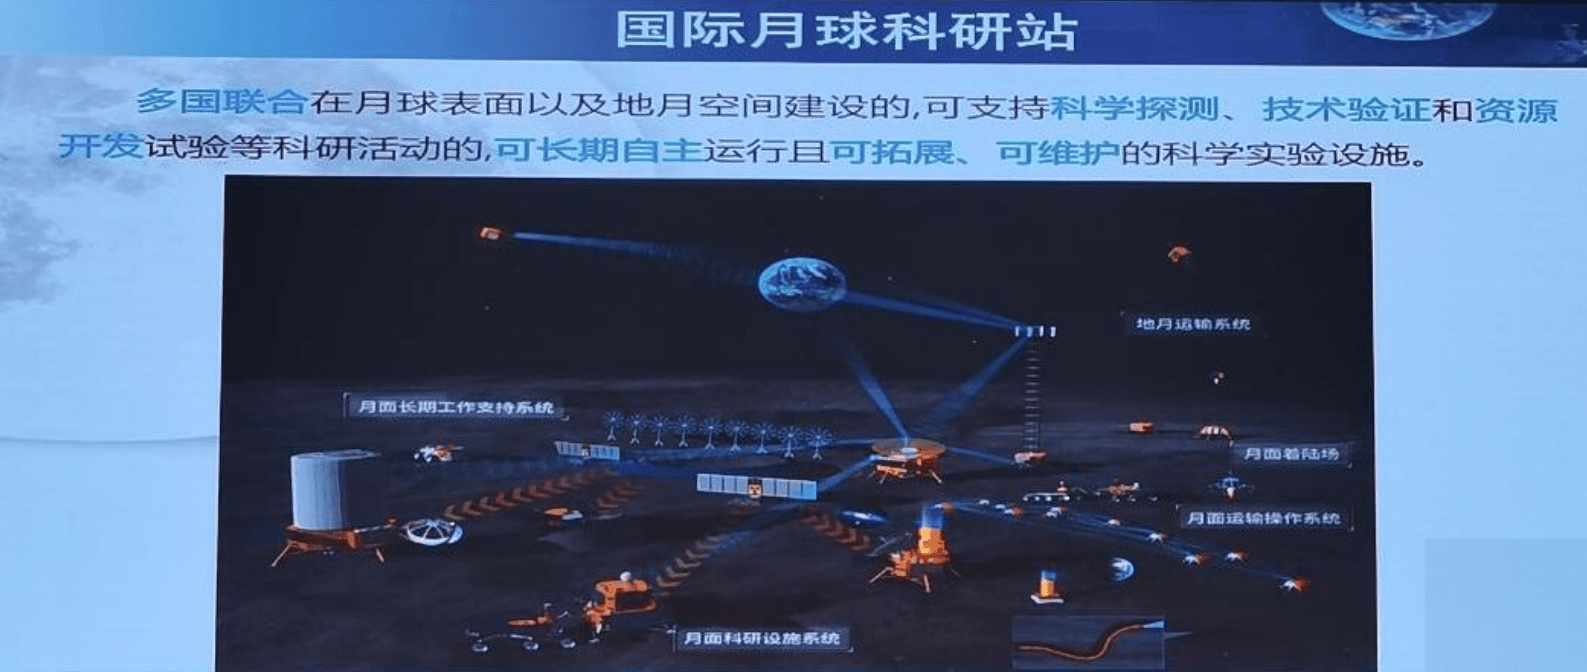 Una slide emersa durante il China Space Day il 24 aprile del 2021. Foto da Weibo.